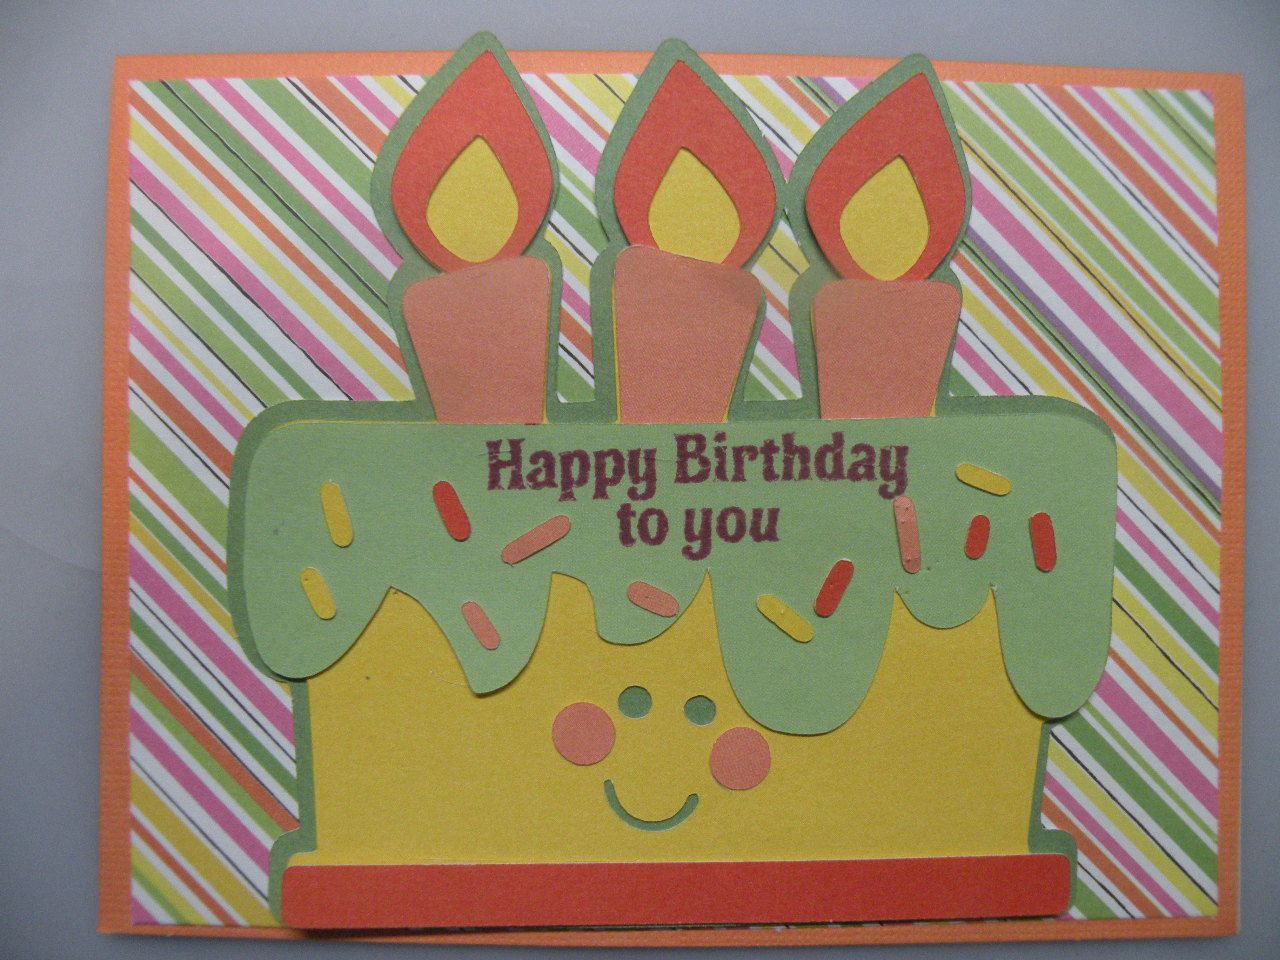 Easy to make homemade birthday card with a cricut homemade birthday cards are something we all give to others throughout the year using a cricut machine you can create a one of a kind card homemade cards made with bookmarktalkfo Choice Image